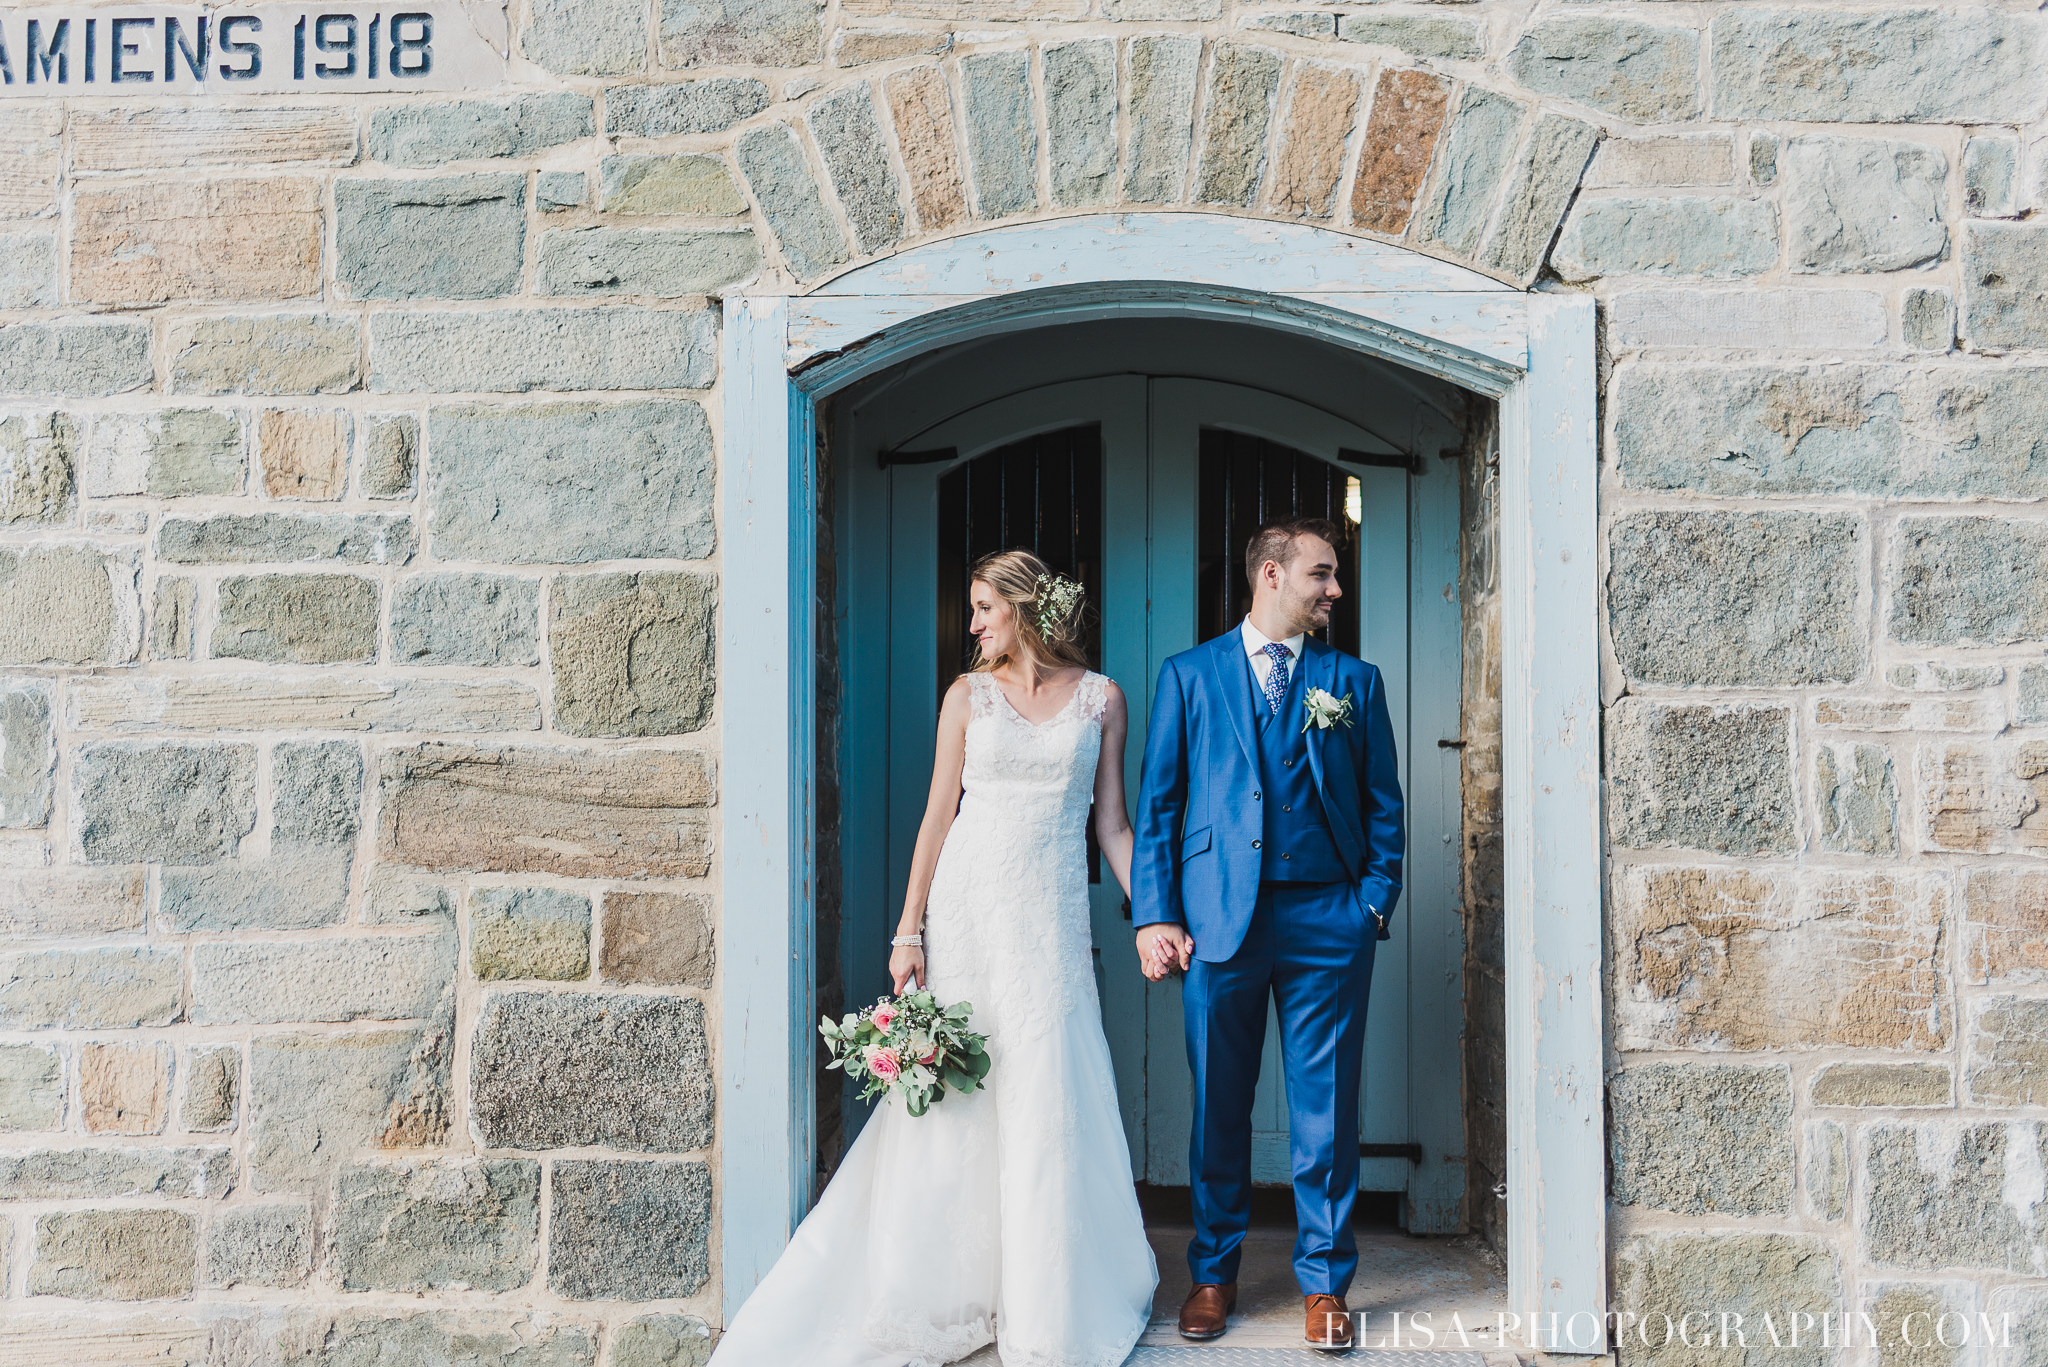 photo mariage militaire citadelle quebec naturelle lumineux fortifications 0731 - Galerie photos de mariage